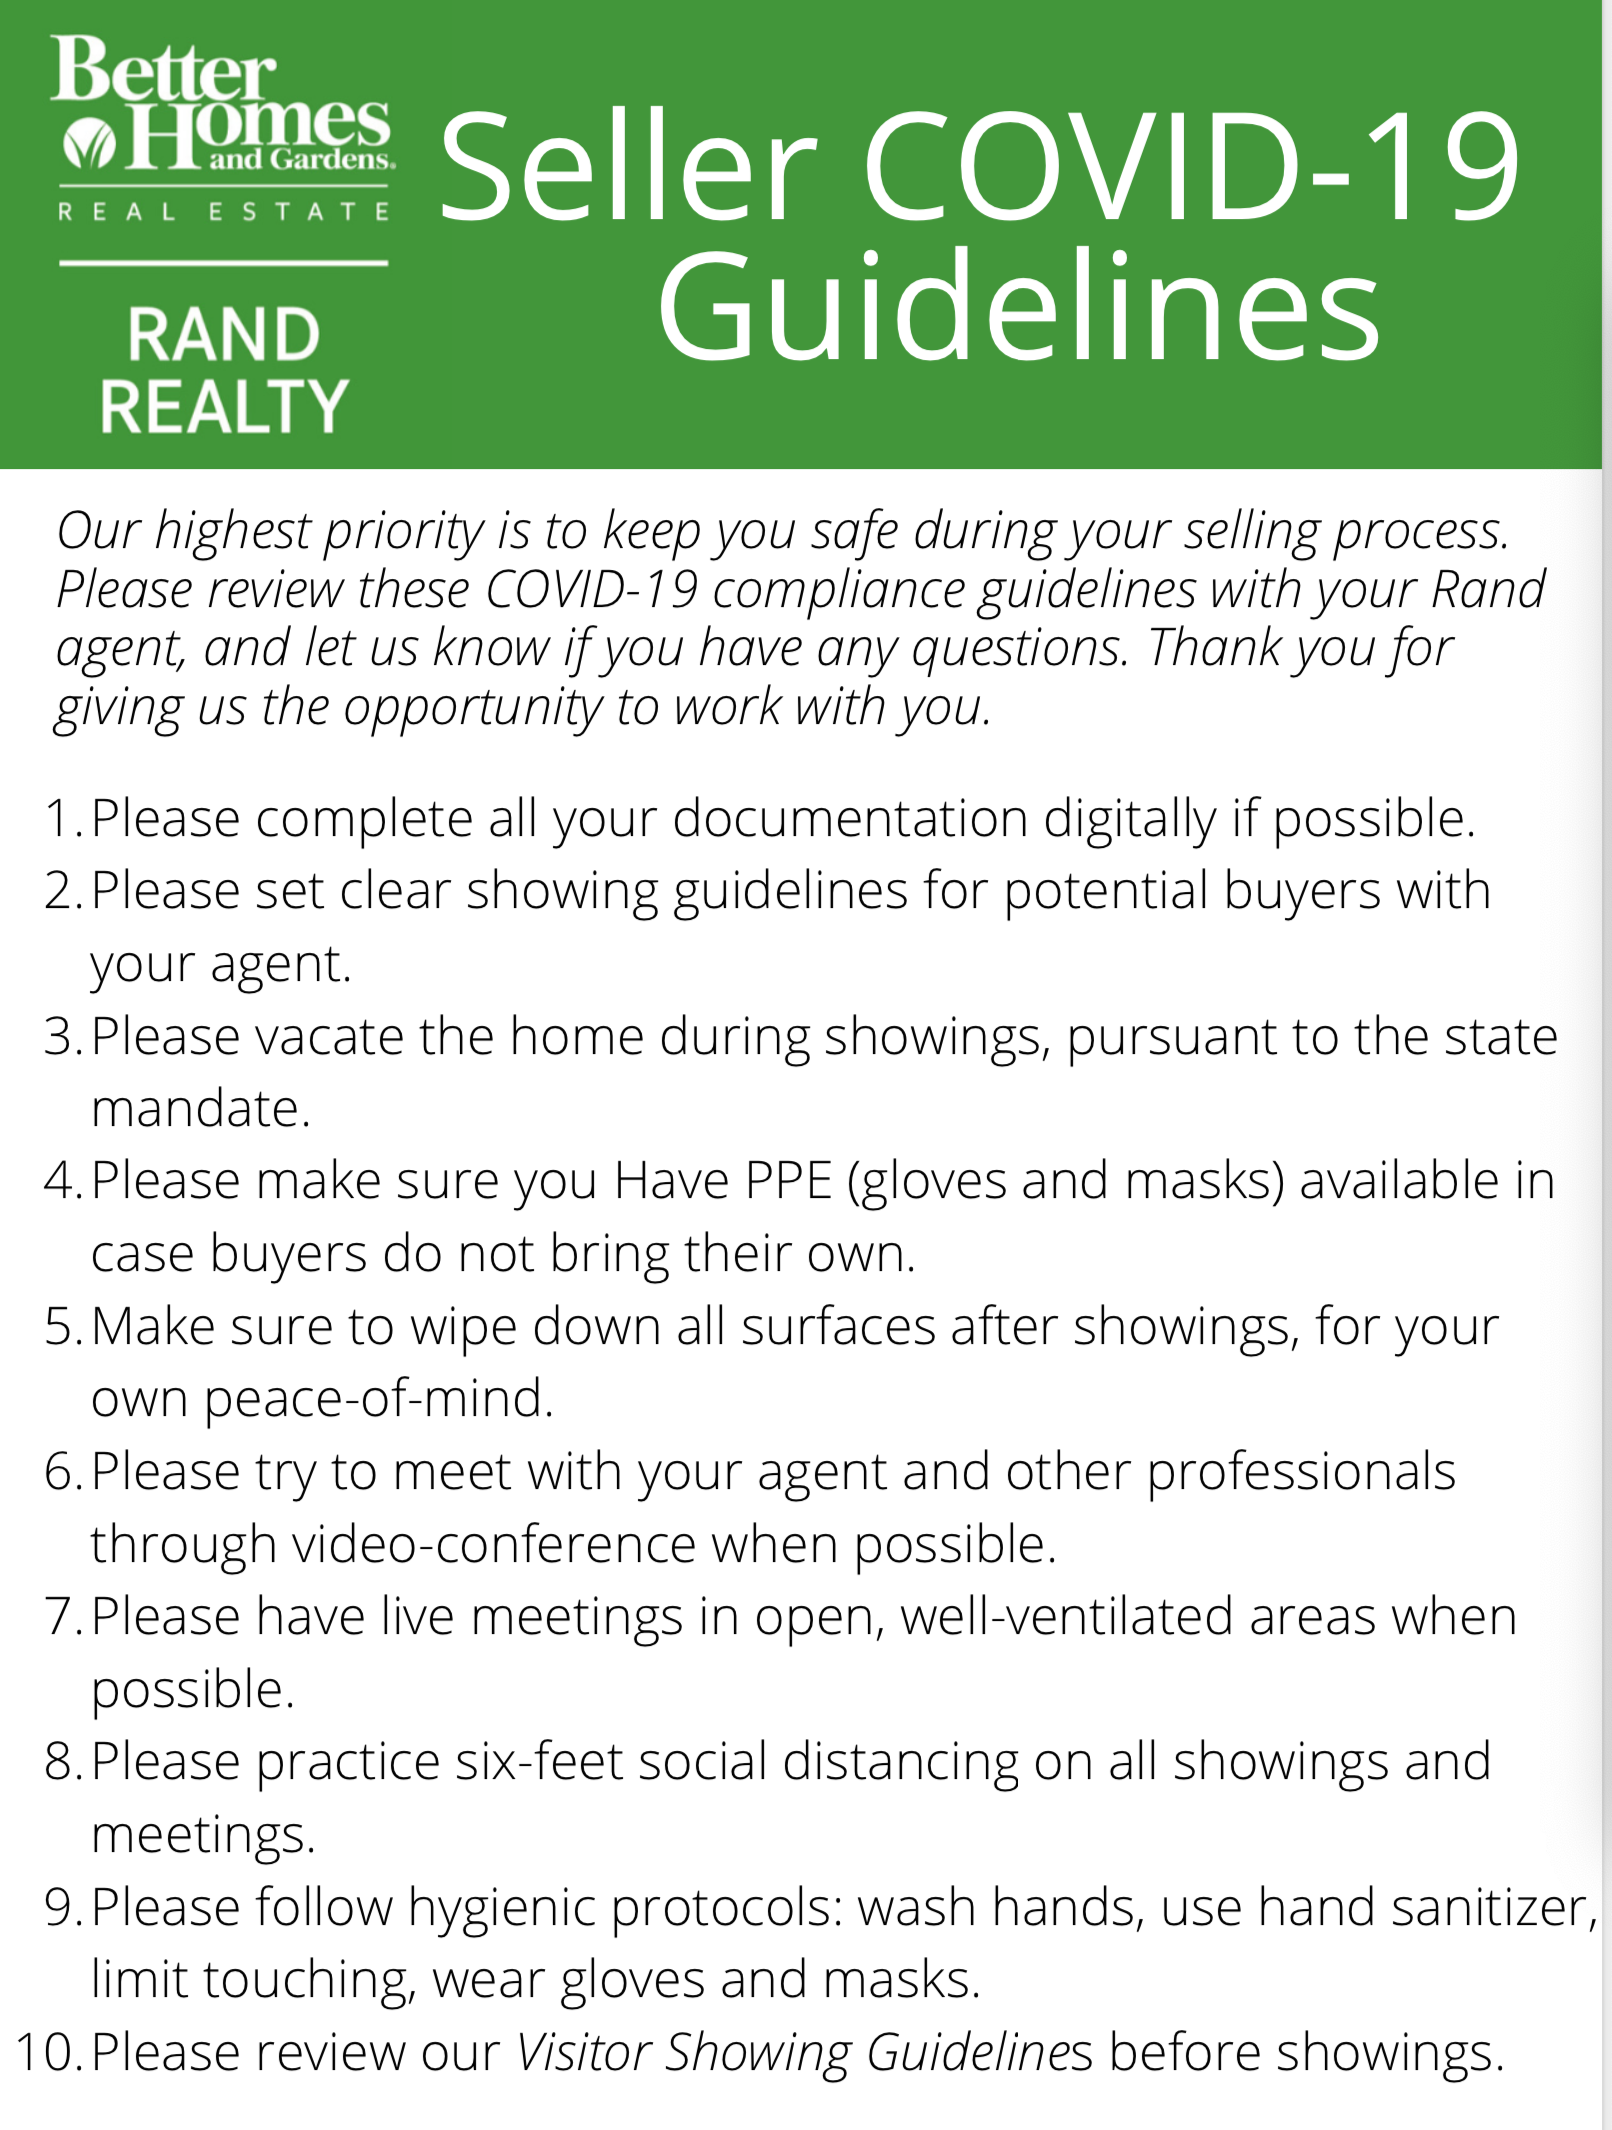 BHG Rand Seller Guidelines